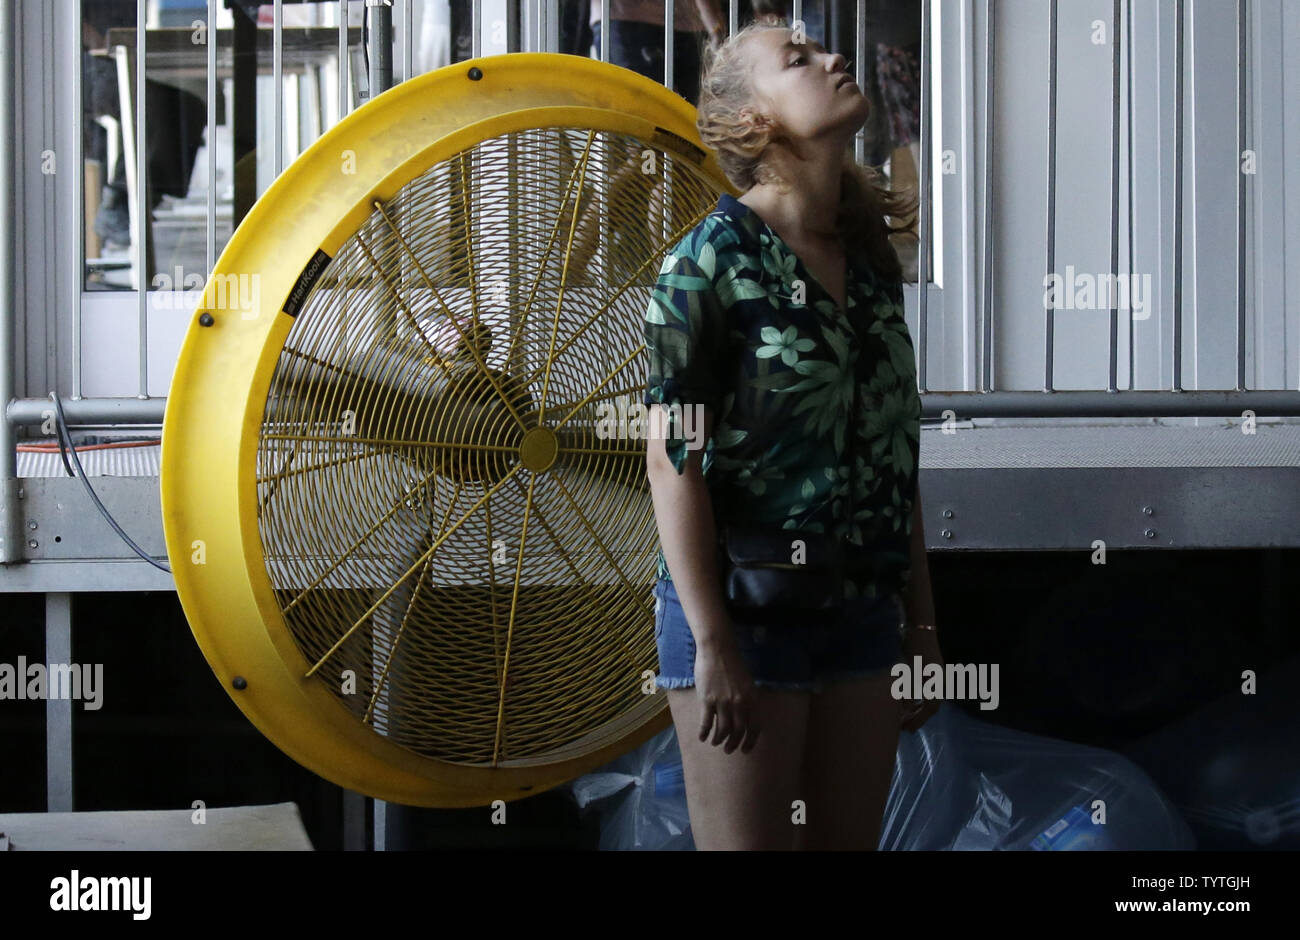 A girl cools off at a fan in temperatures above 95 degrees before boarding a ferry to Liberty Island 2 days before Independence Day and the 4th of July in New York City on July 2, 2018. Temperatures have topped 90 degrees for a fourth straight day in New York City on Monday extending the city's heat wave.     Photo by John Angelillo/UPI Stock Photo